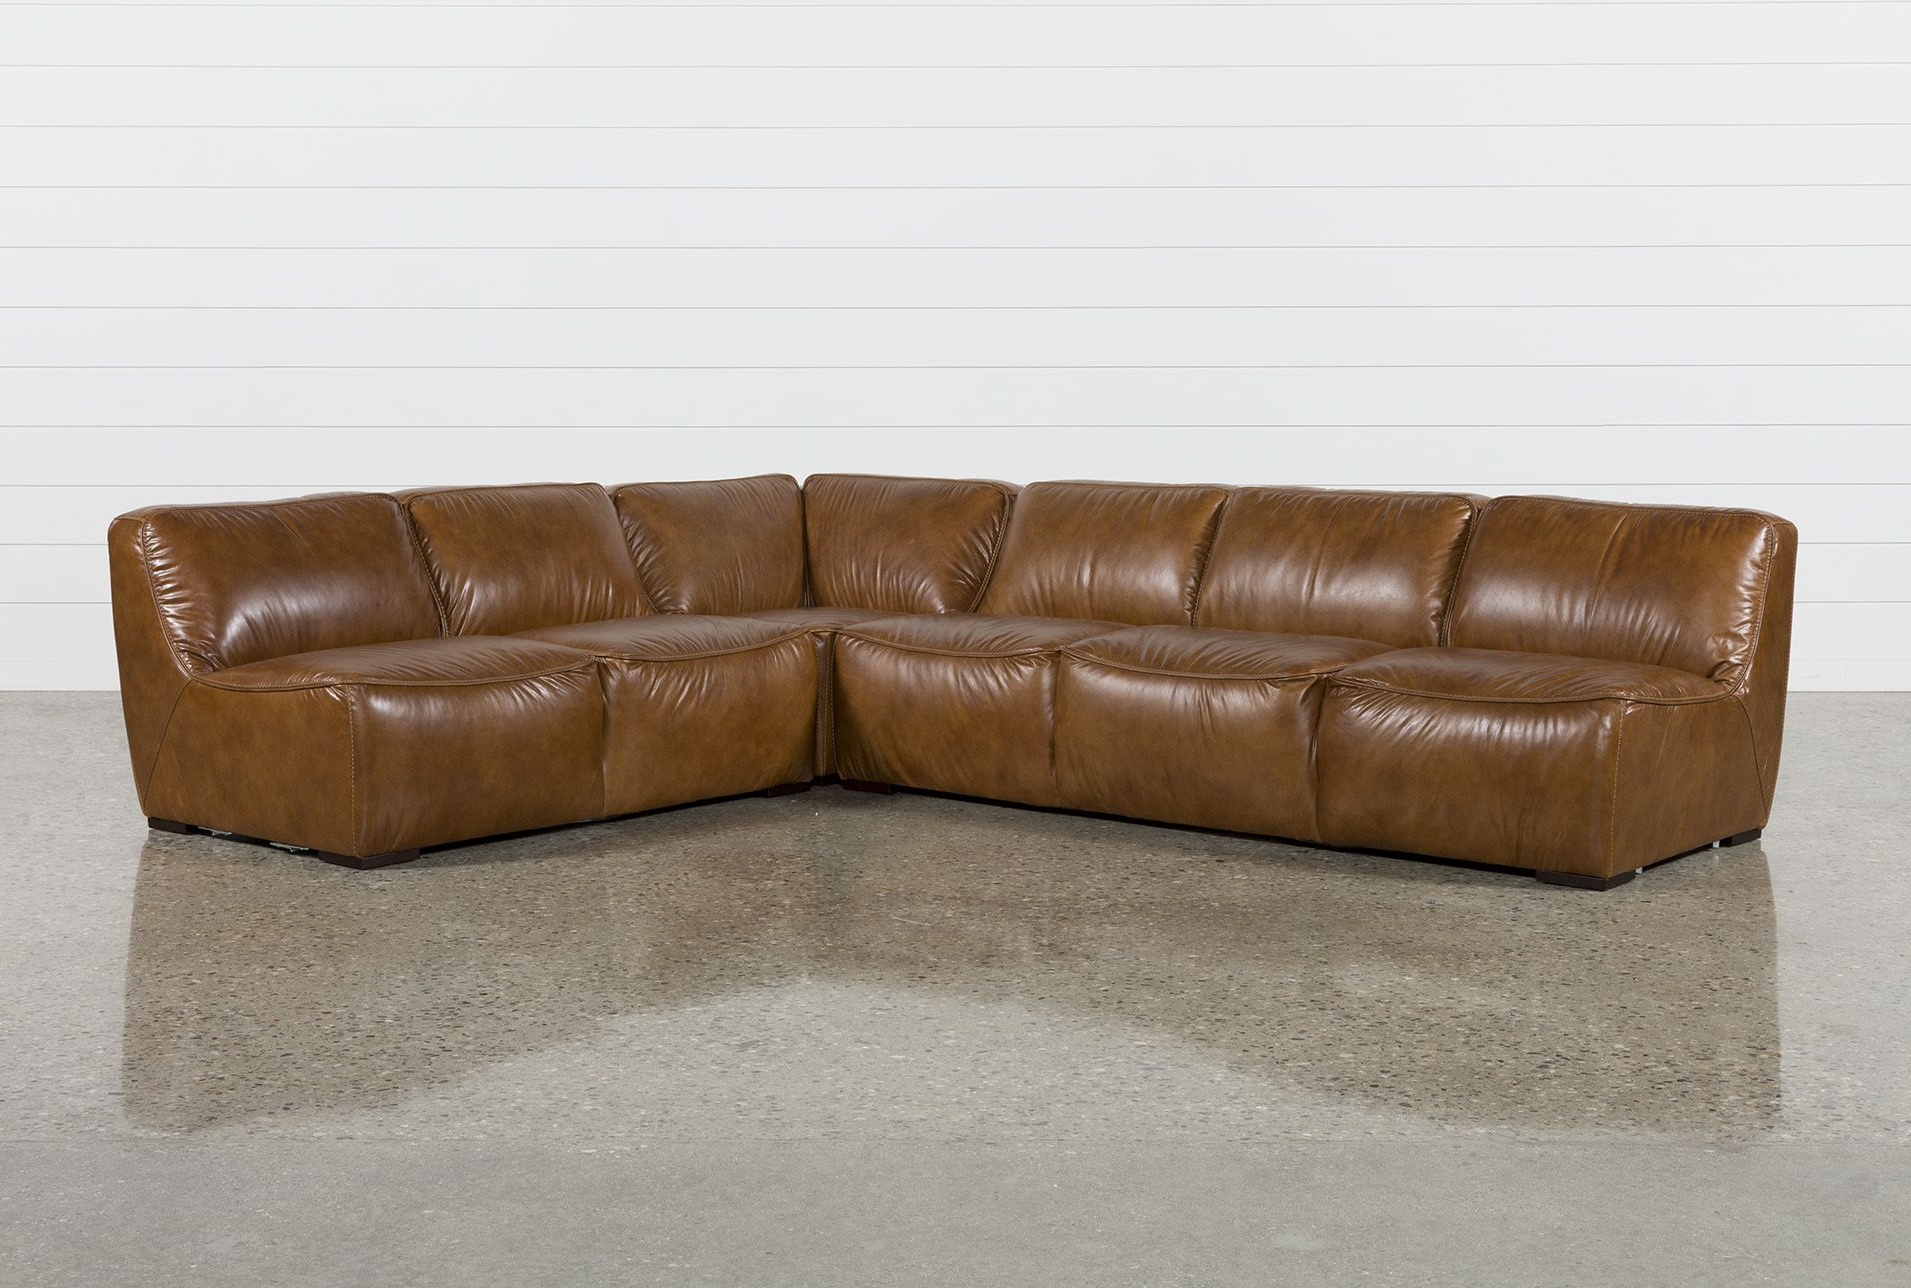 30 Things In Your Home You Should Get Rid Ofage 30 Within Latest Norfolk Chocolate 3 Piece Sectionals With Raf Chaise (View 14 of 20)